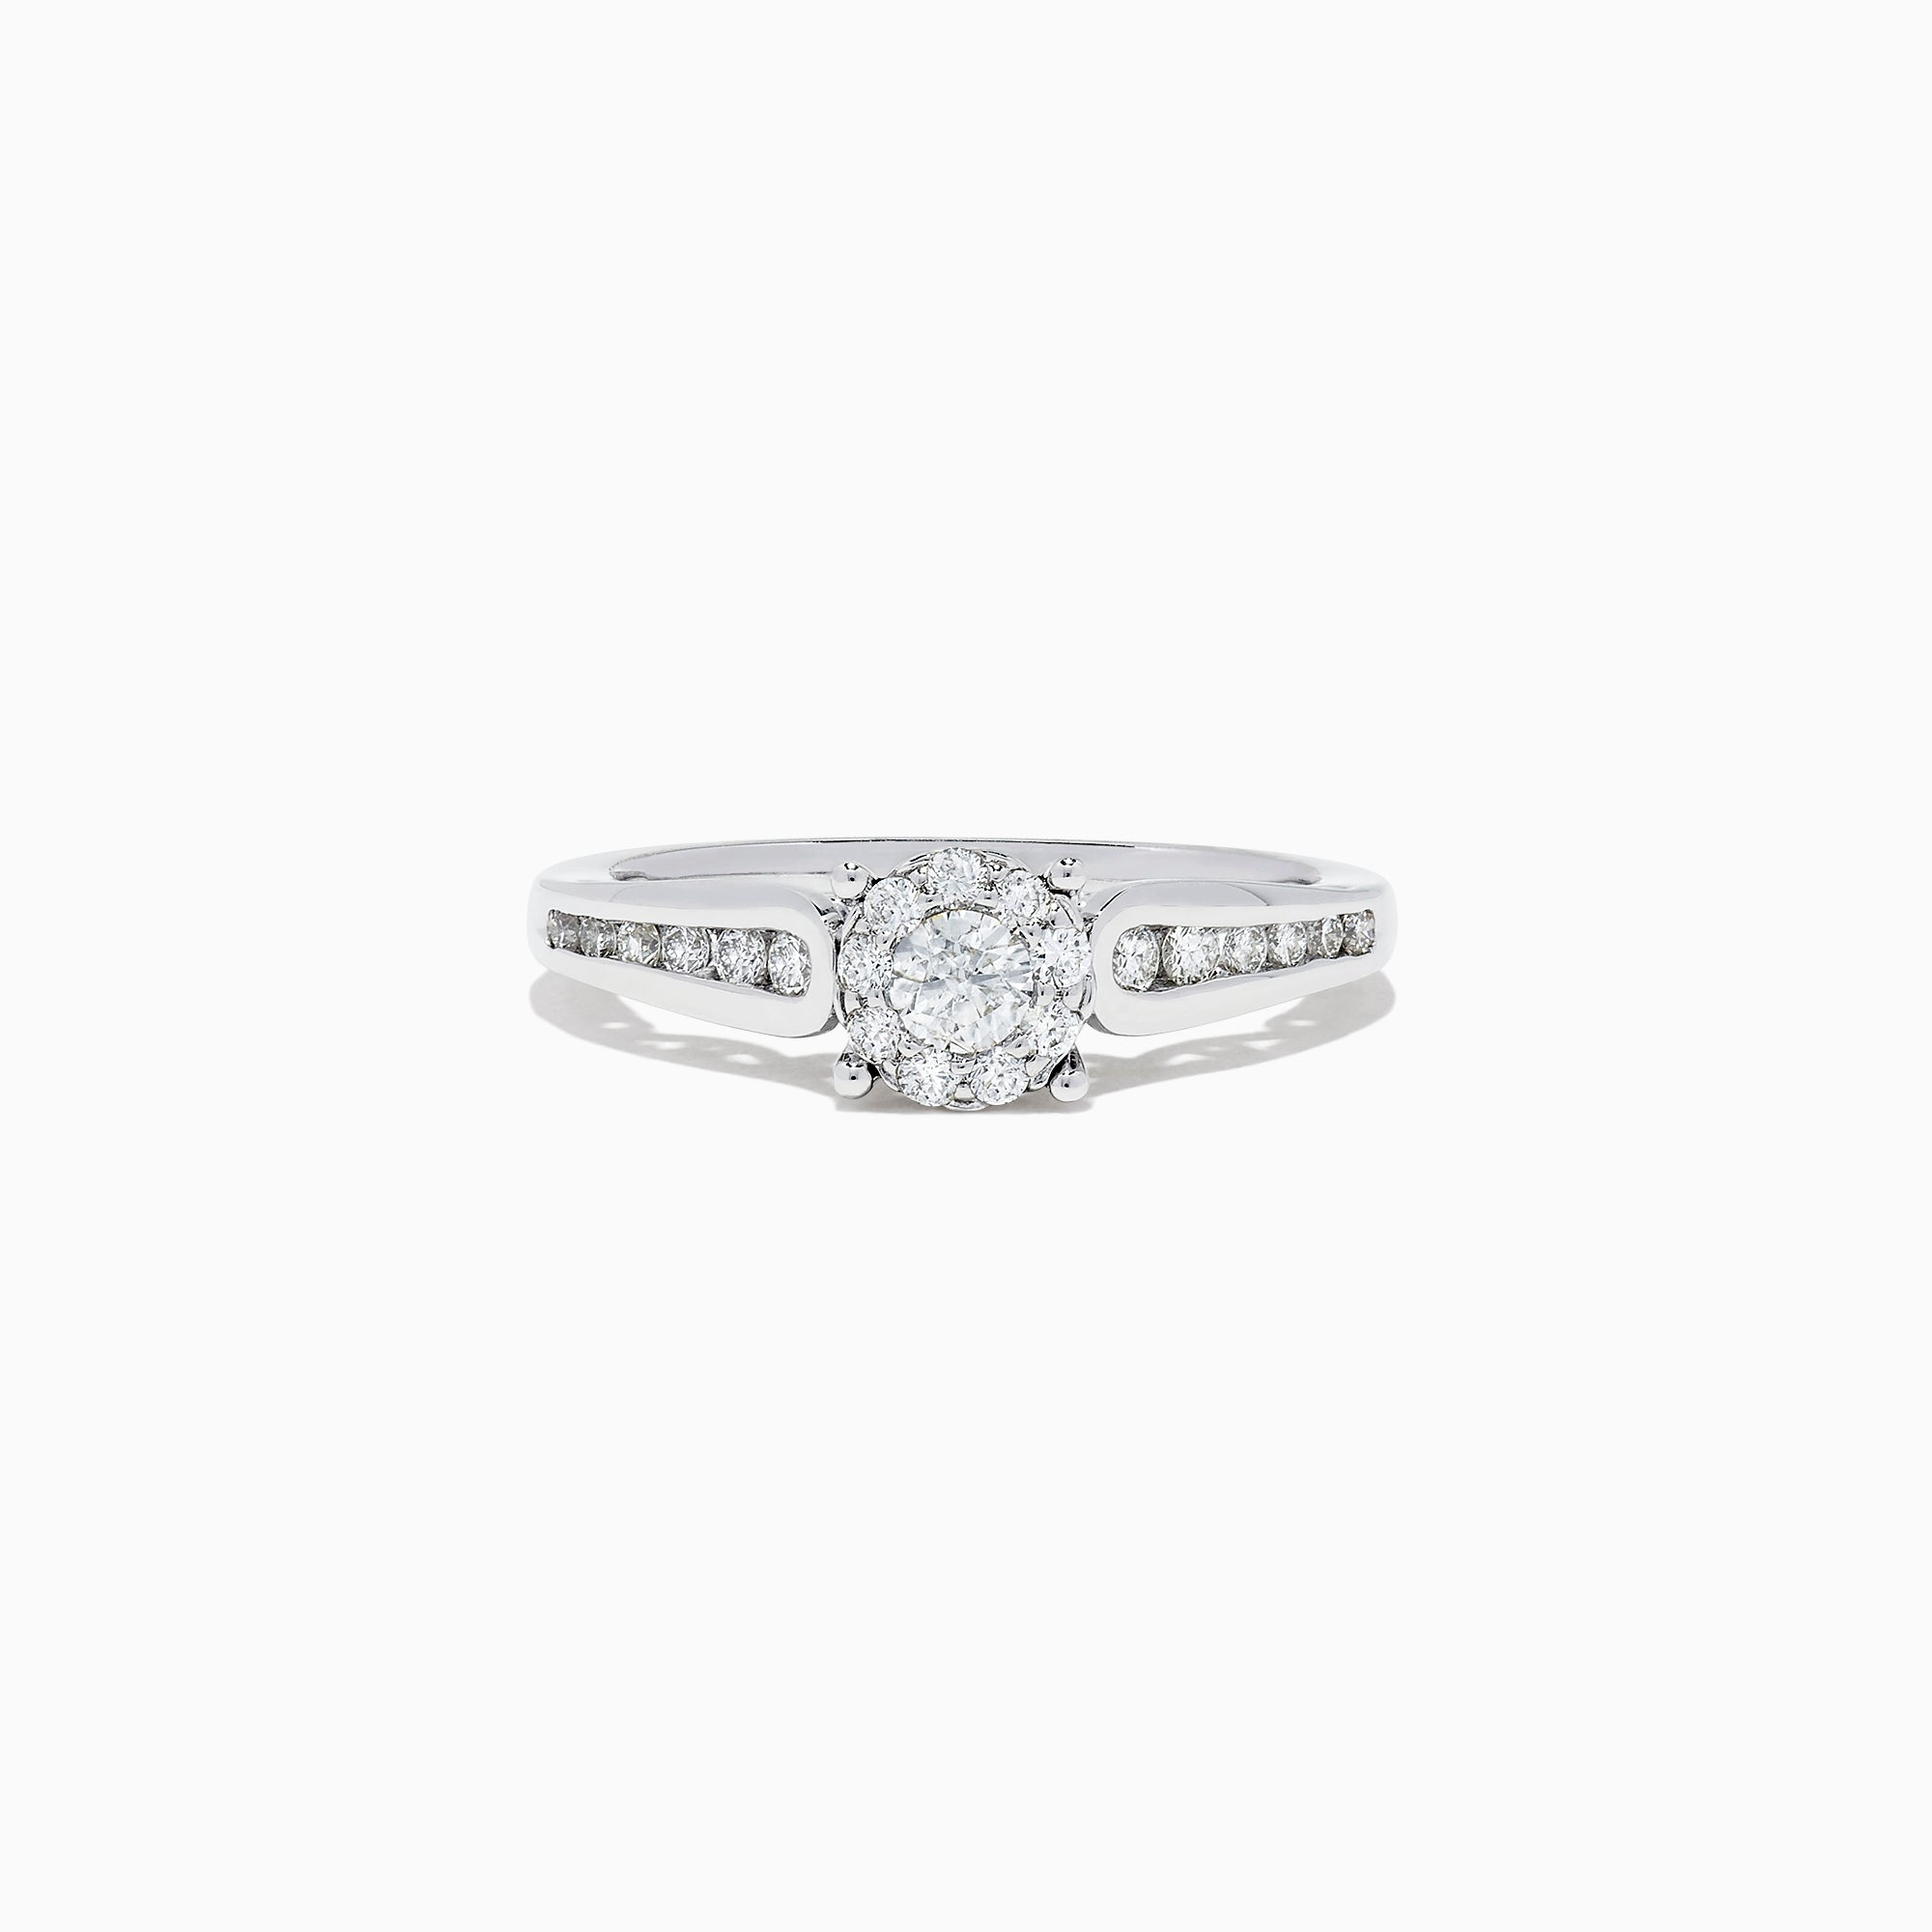 Effy Bridal 14K White Gold Diamond Cluster Ring and Band Set, 0.72 TCW